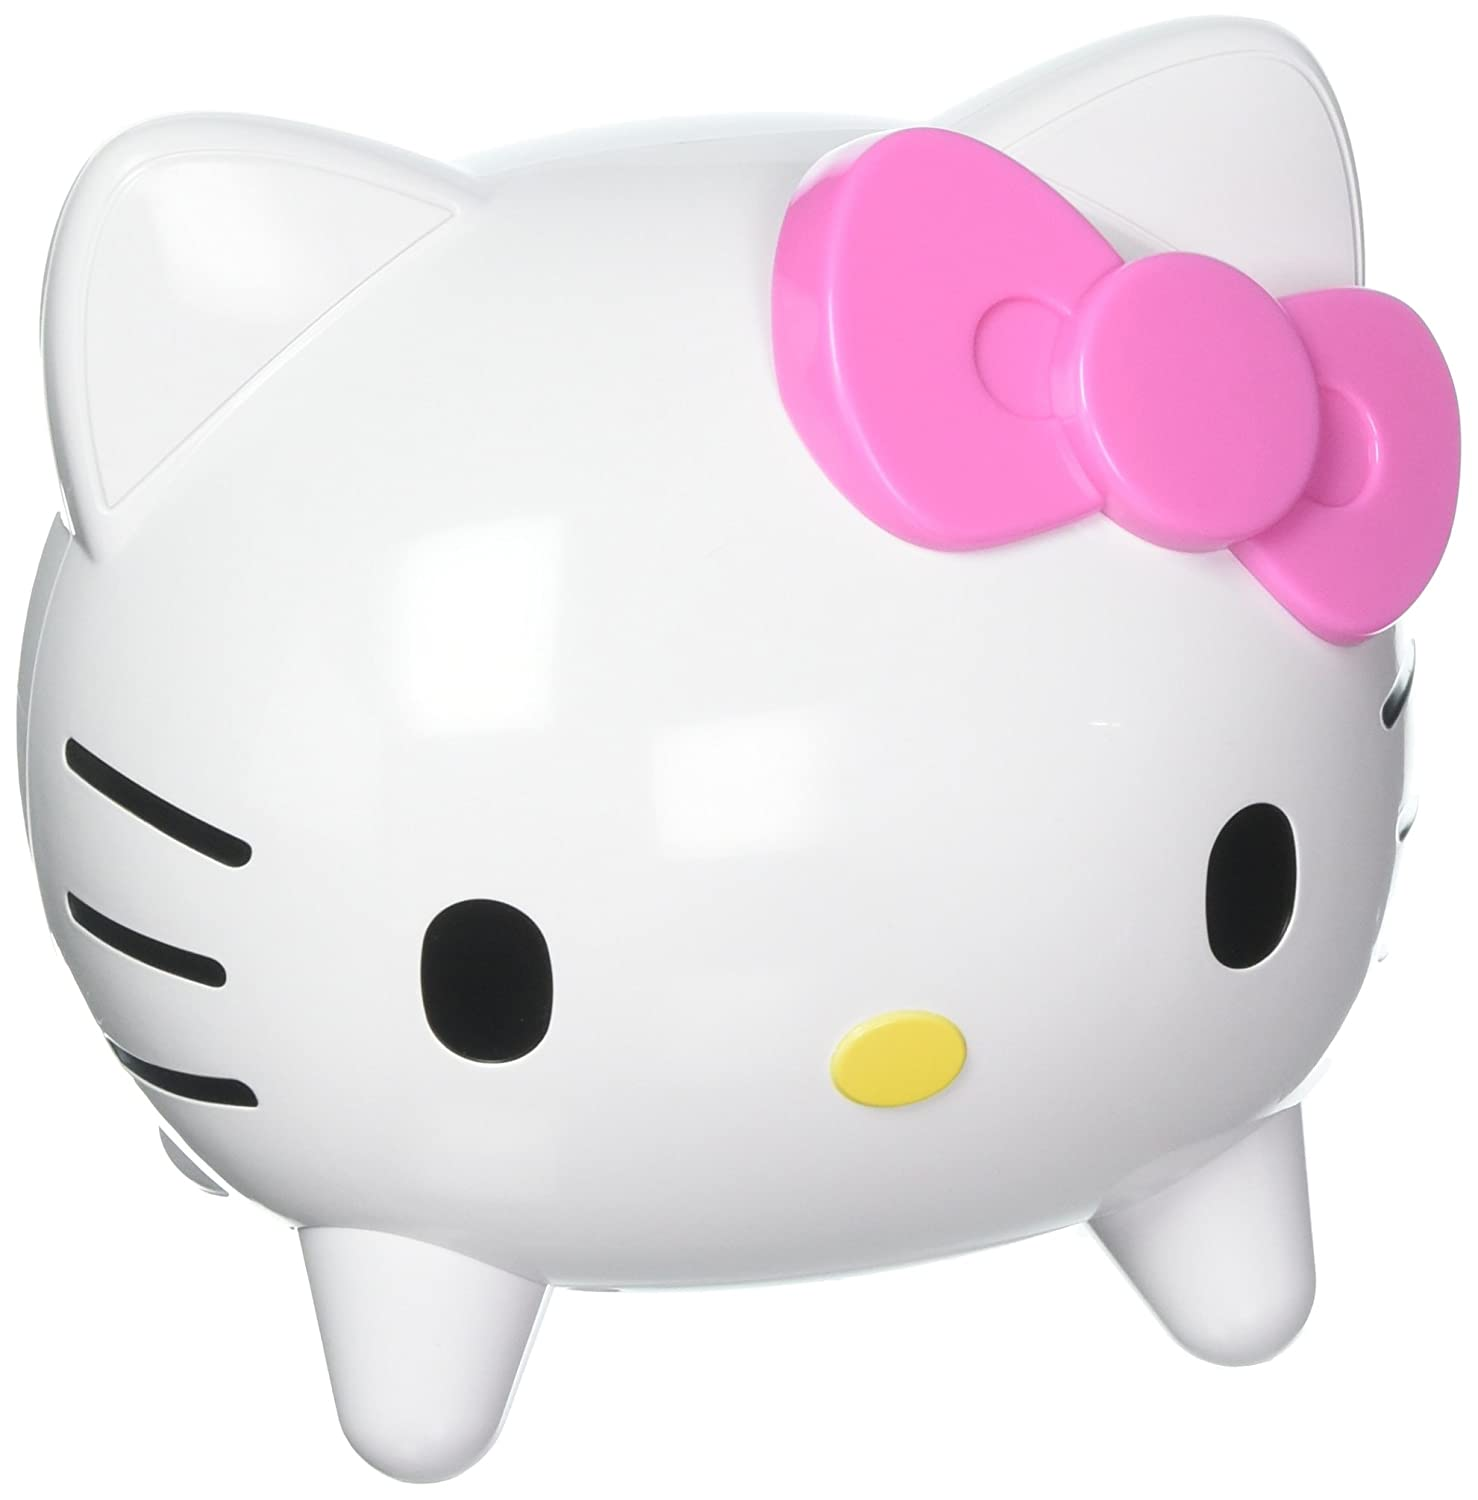 HELLO KITTY HKT4557AAF, Hello Kitty Bluetooth Speaker System KT4557A/AF